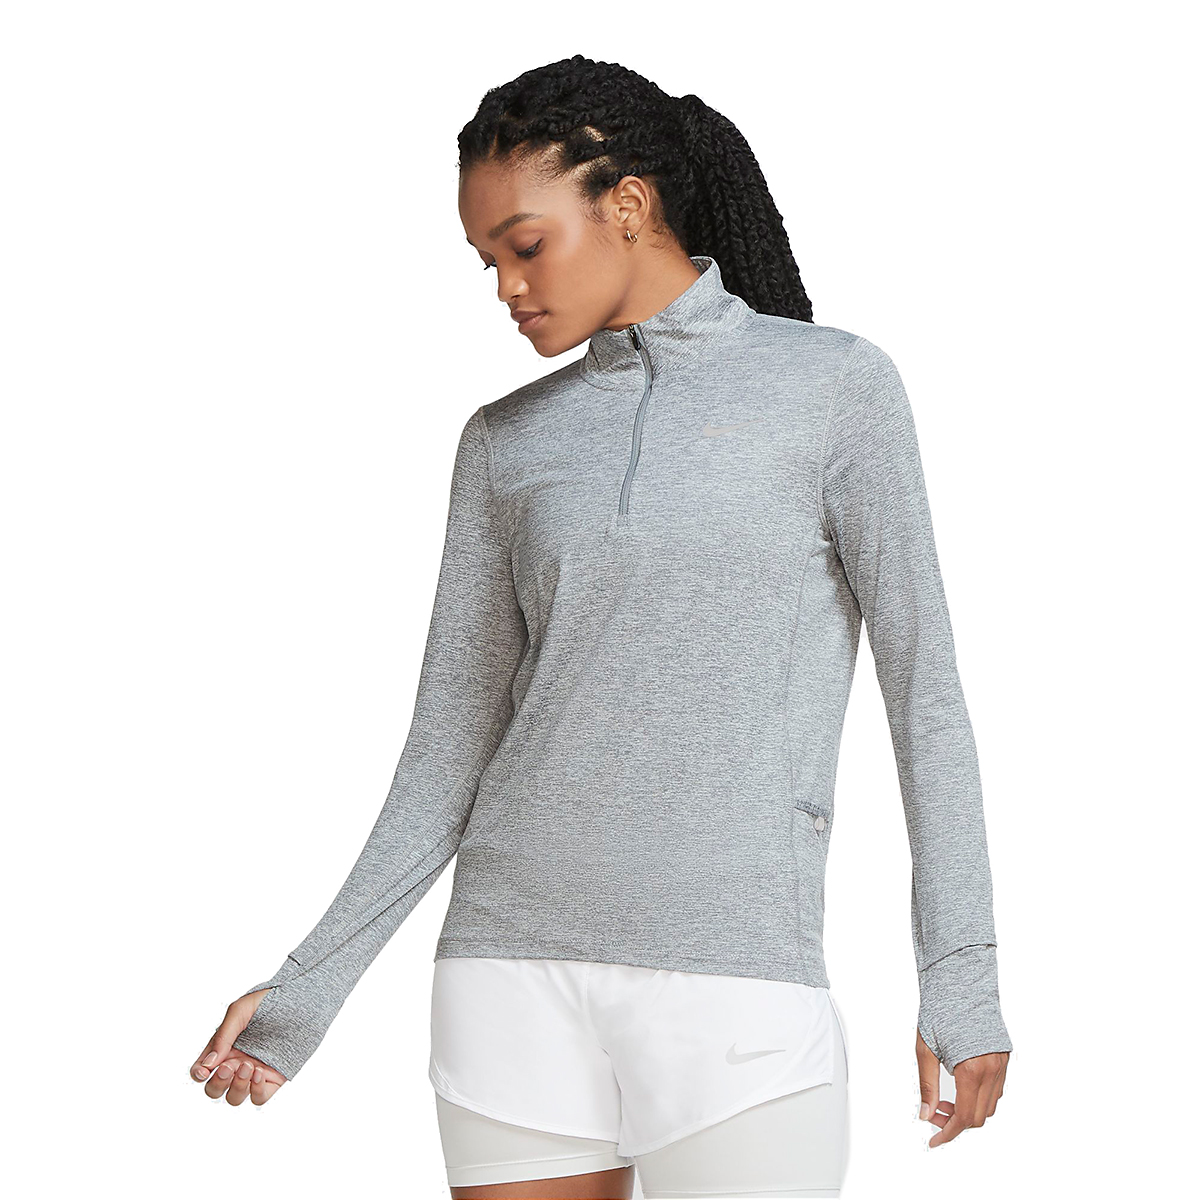 Women's Nike Womens Element 1/2-Zip Running Top - Color: Smoke Grey/Reflective Silver - Size: XS, Smoke Grey/Reflective Silver, large, image 3